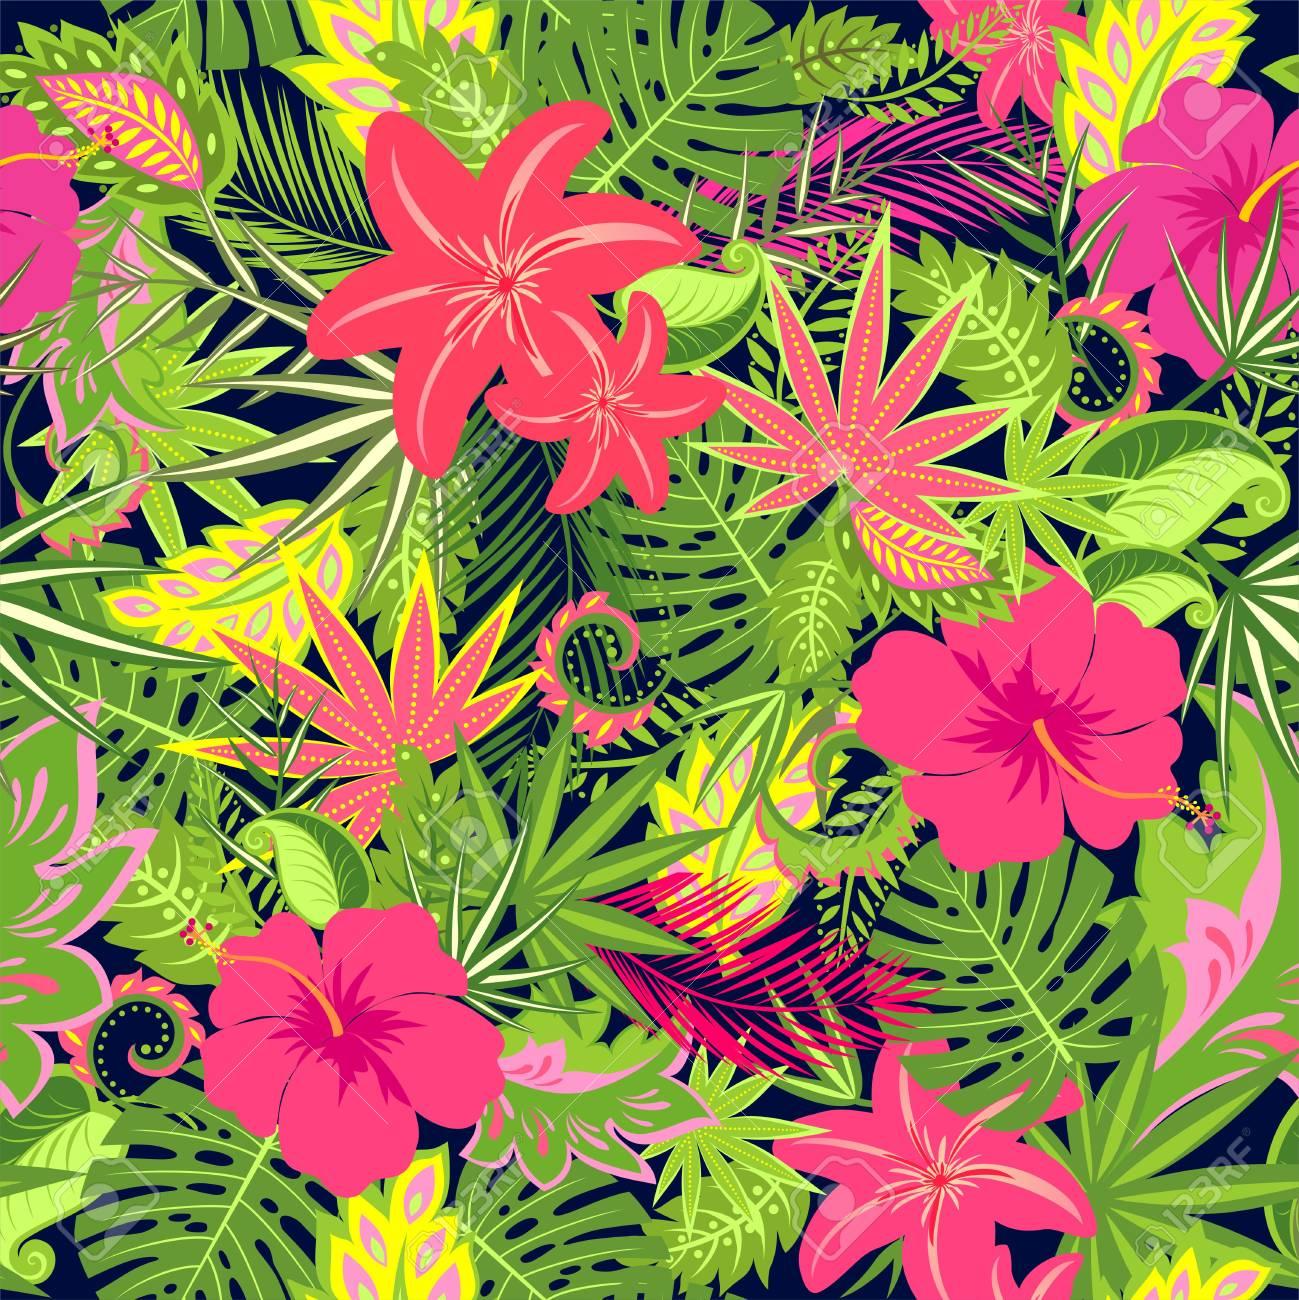 Seamless Floral Wallpaper With Exotic Flowers Palm Leaves And